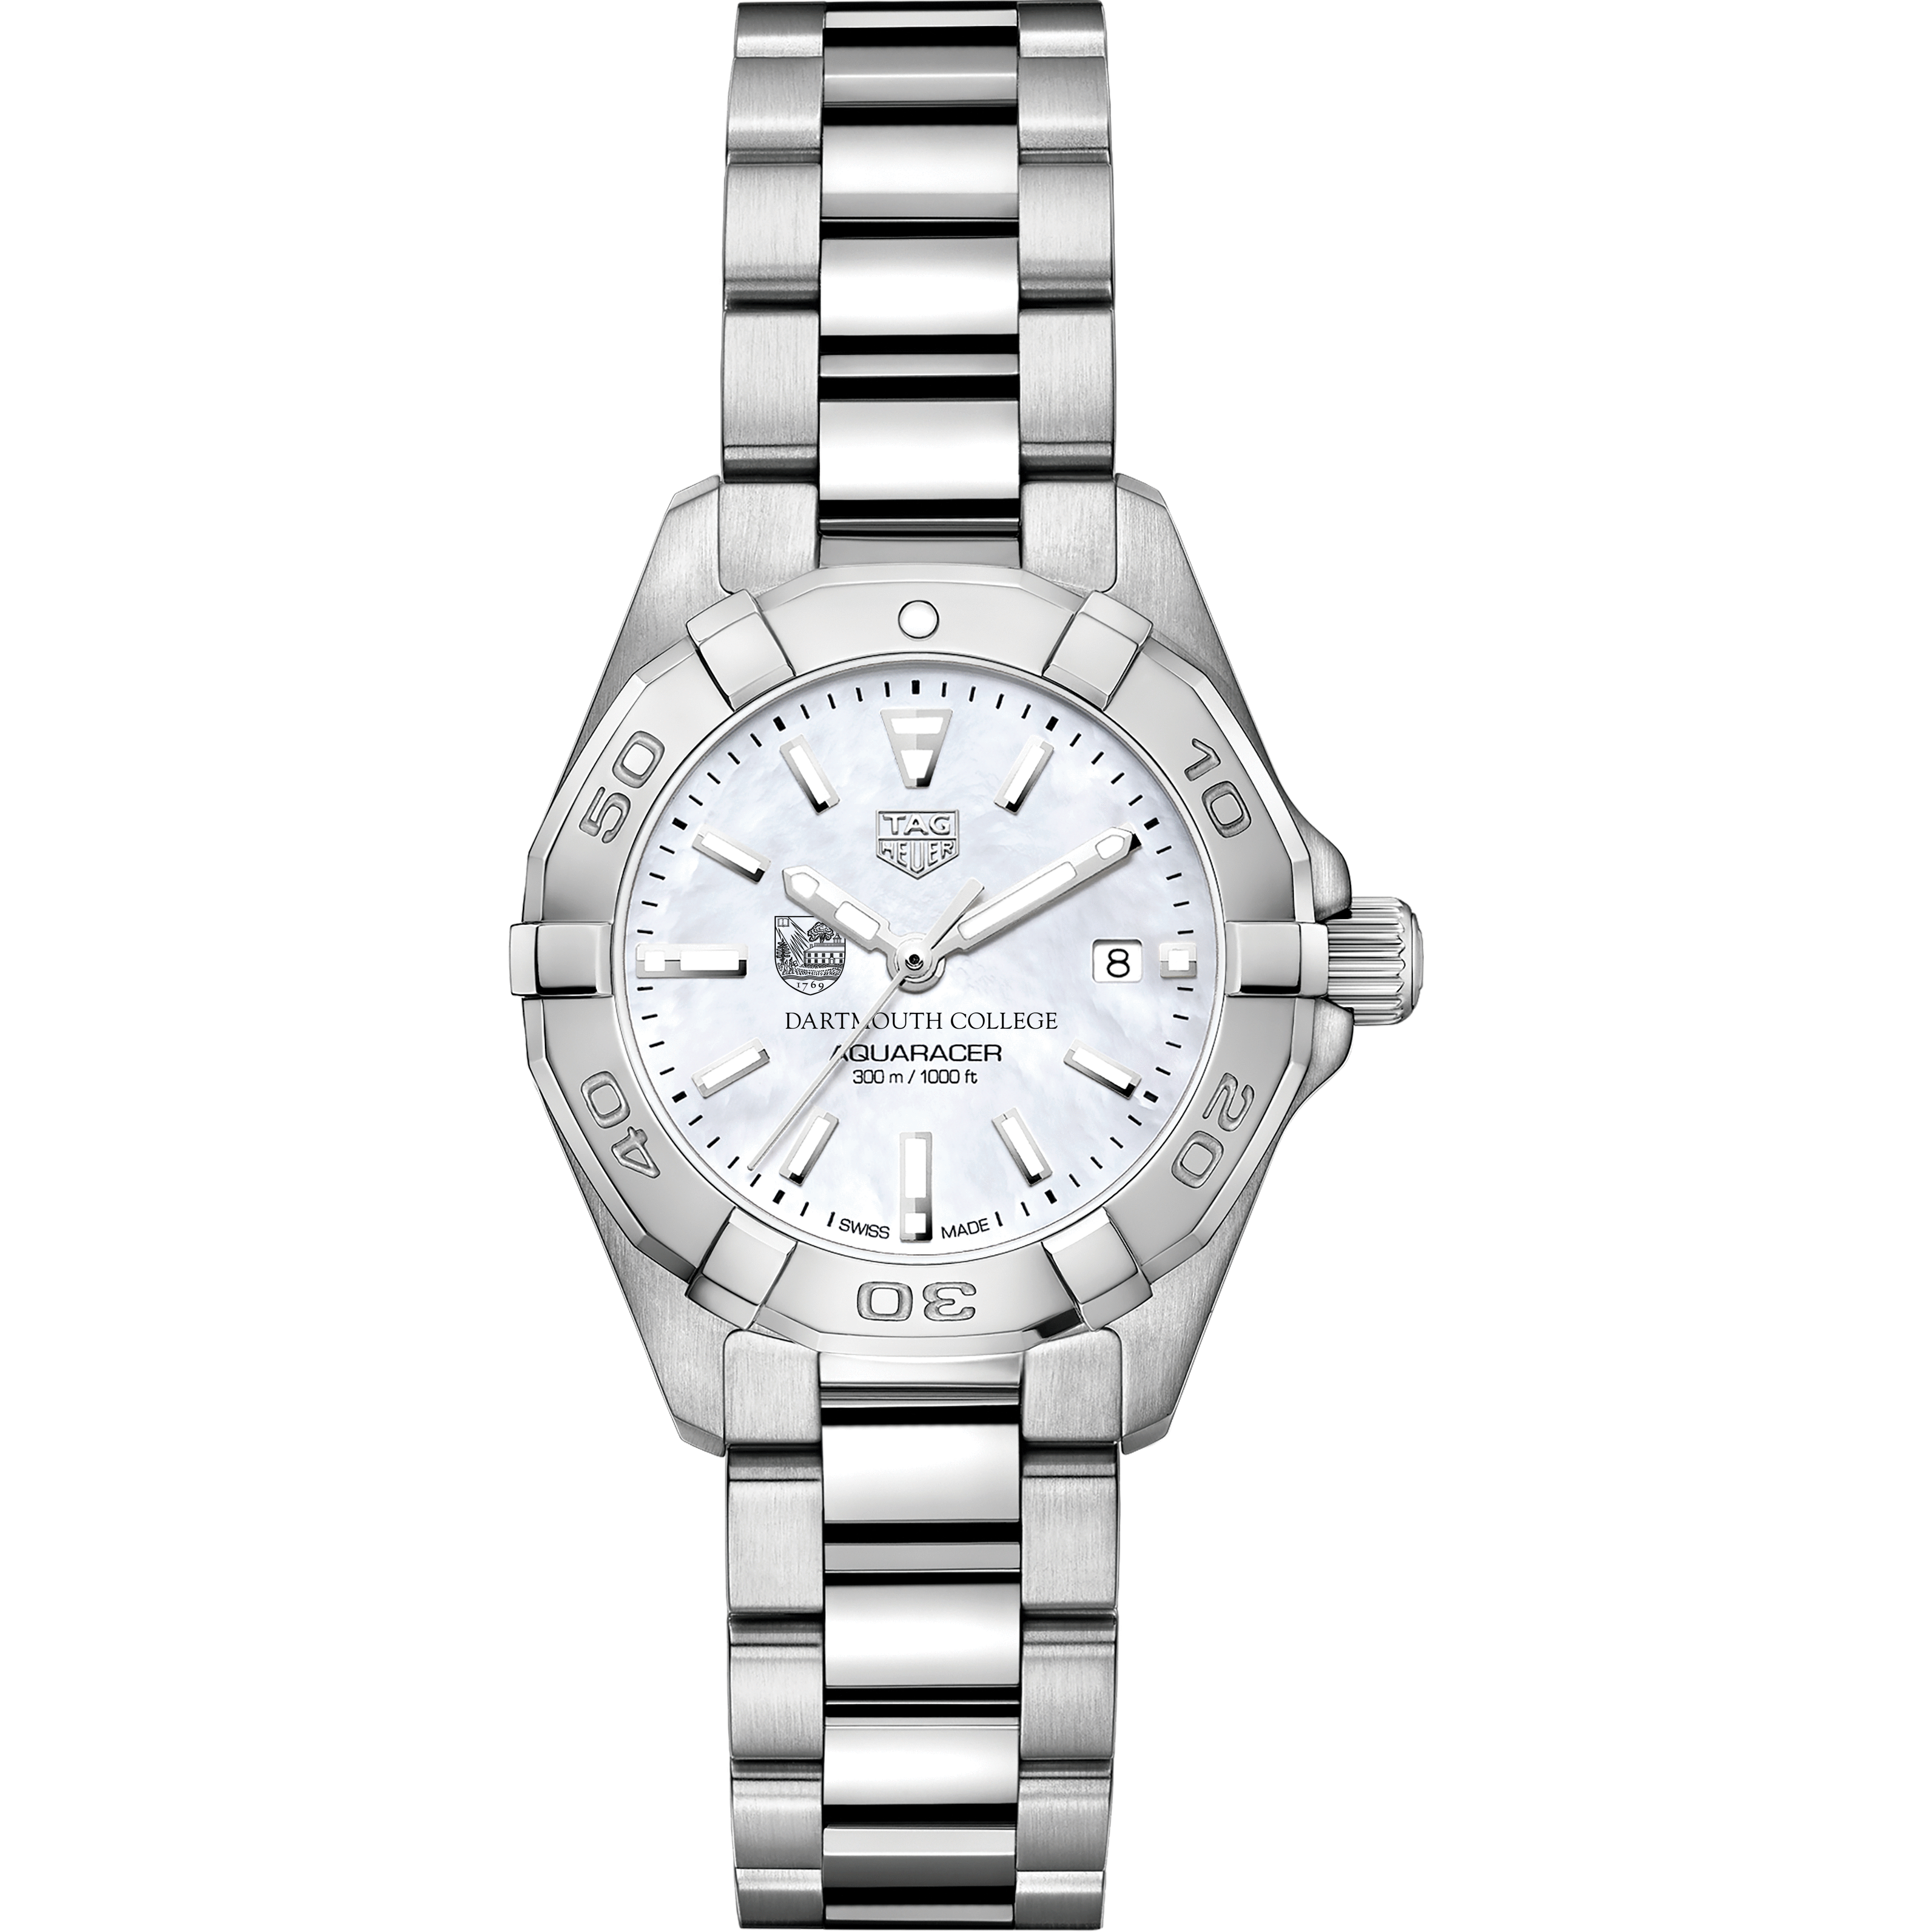 Dartmouth College Women's TAG Heuer Steel Aquaracer with MOP Dial - Image 2